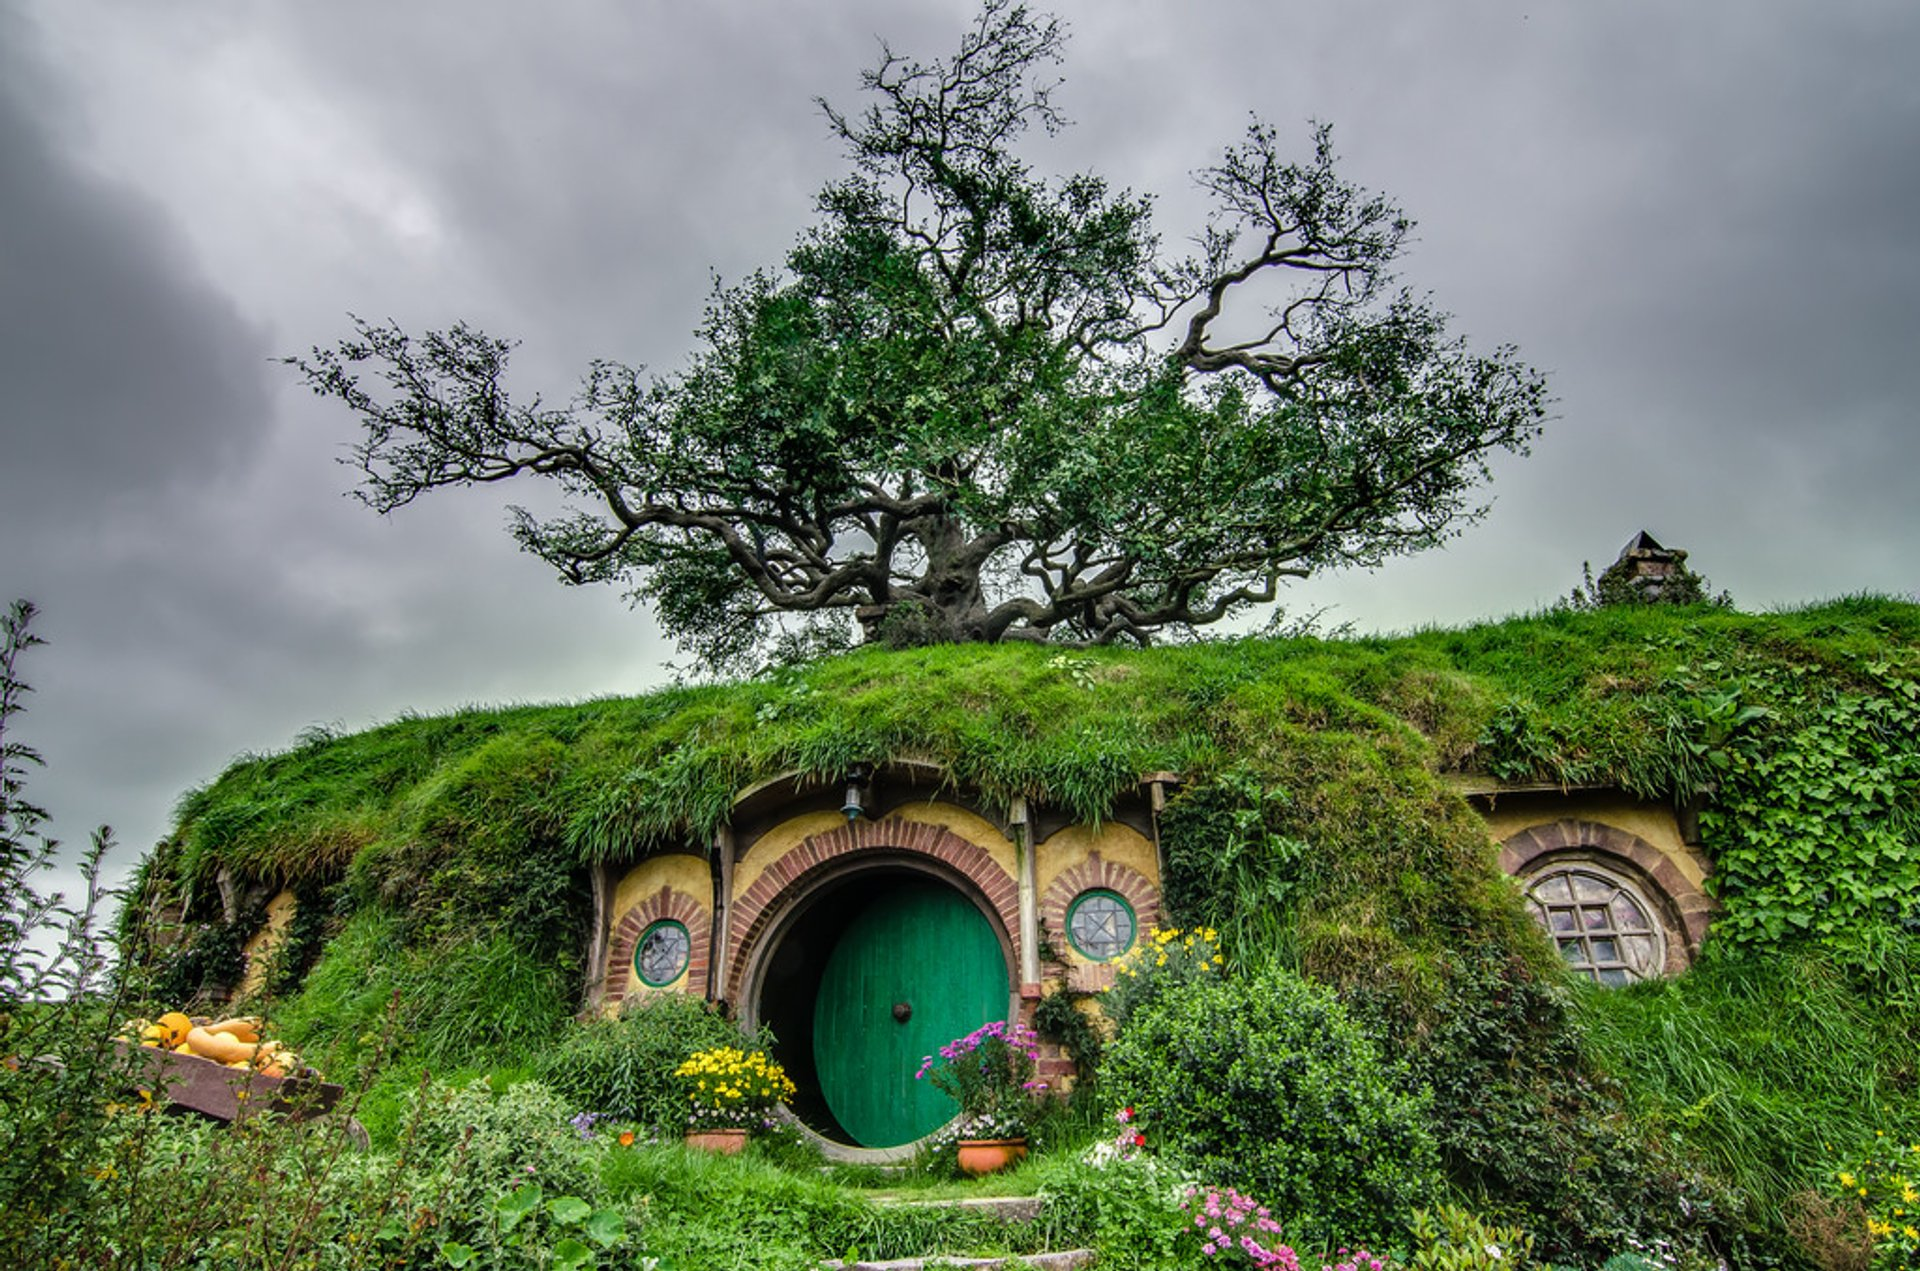 Hobbiton in New Zealand 2020 - Best Time